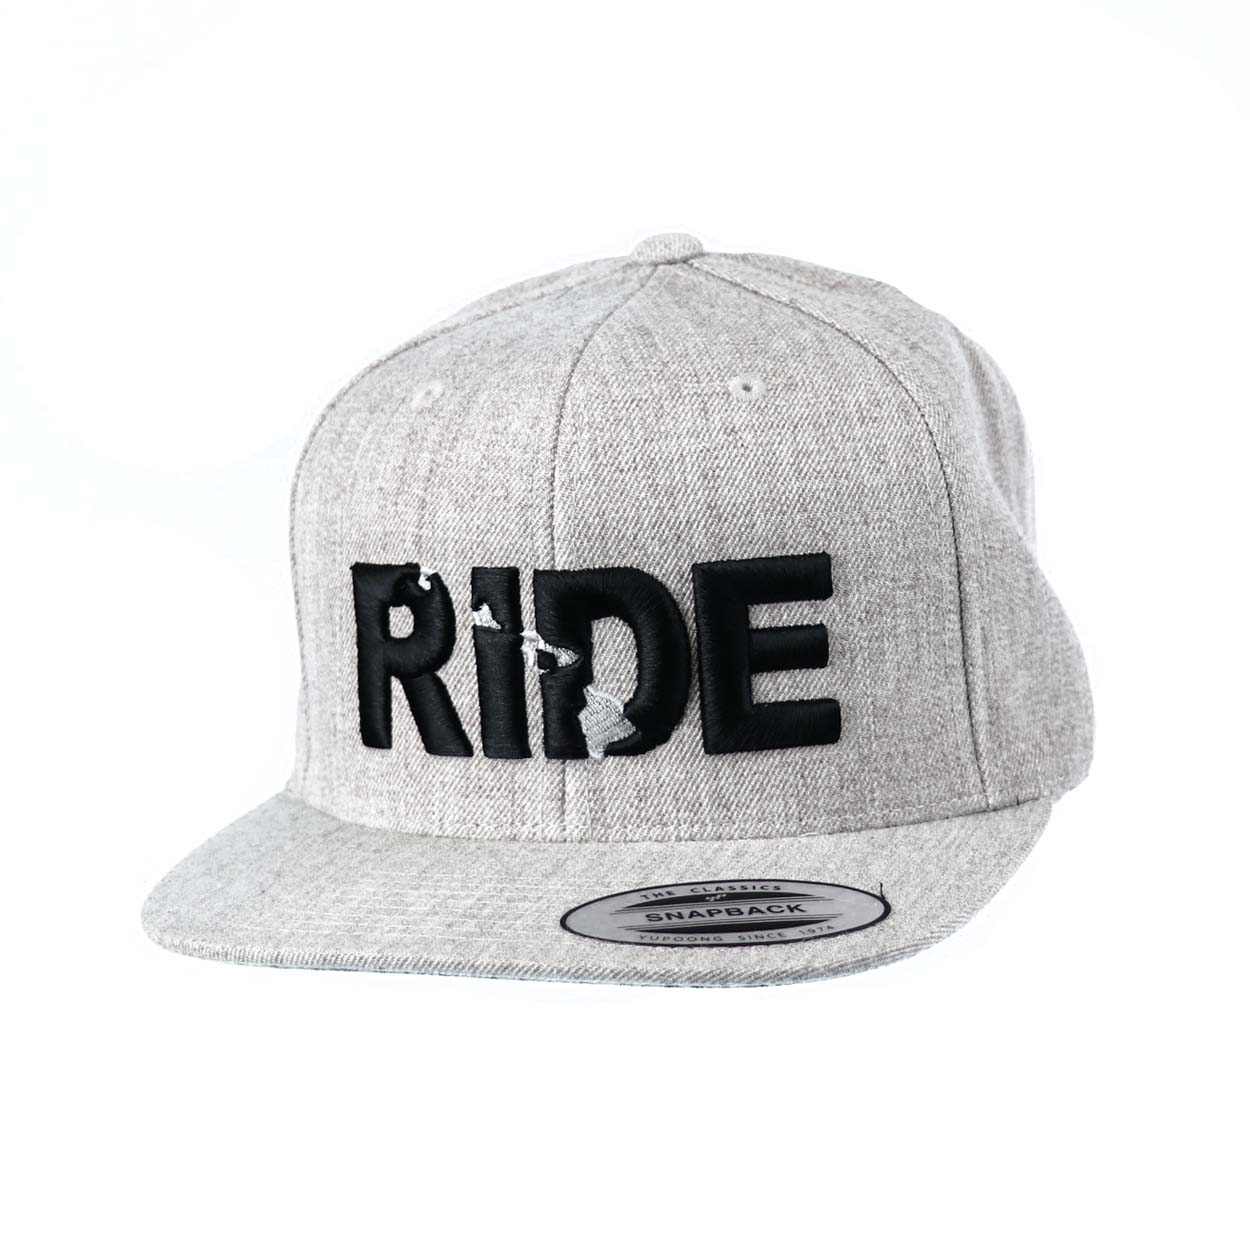 Ride Hawaii Classic Embroidered  Snapback Flat Brim Hat Gray/Black